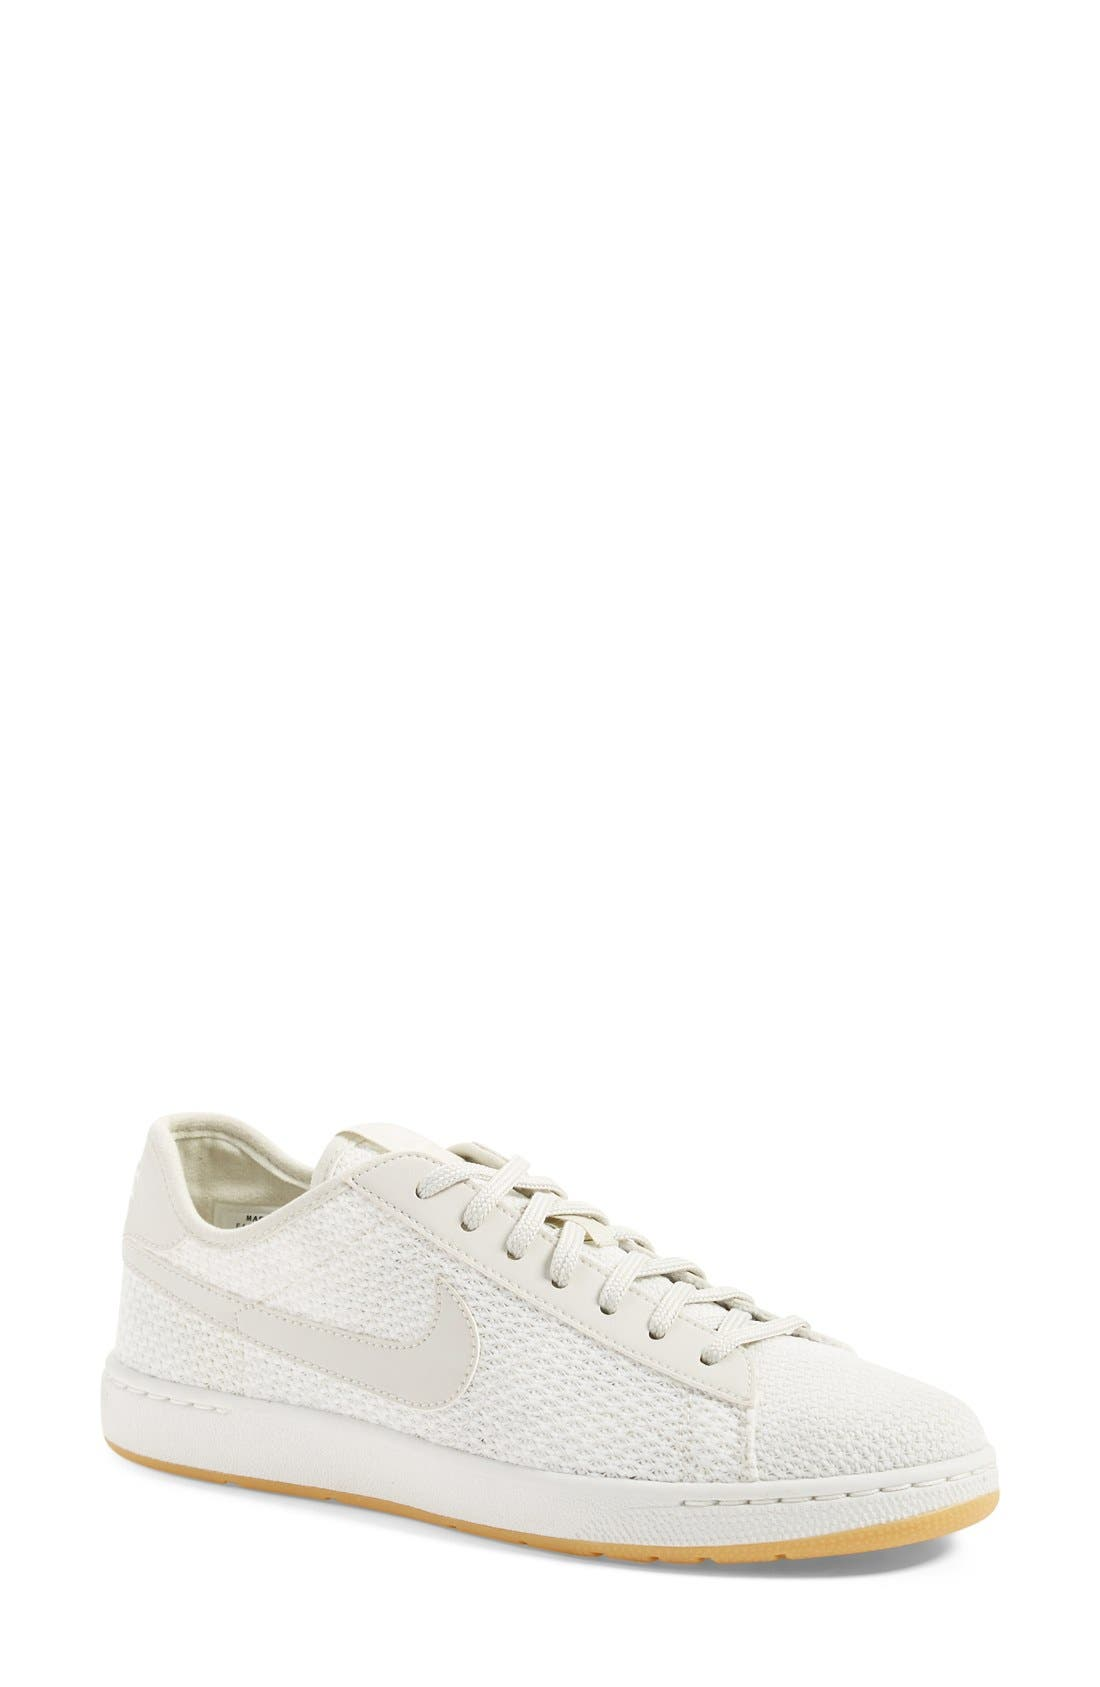 'Tennis Classic Ultra -Textile' Sneaker,                         Main,                         color, 101